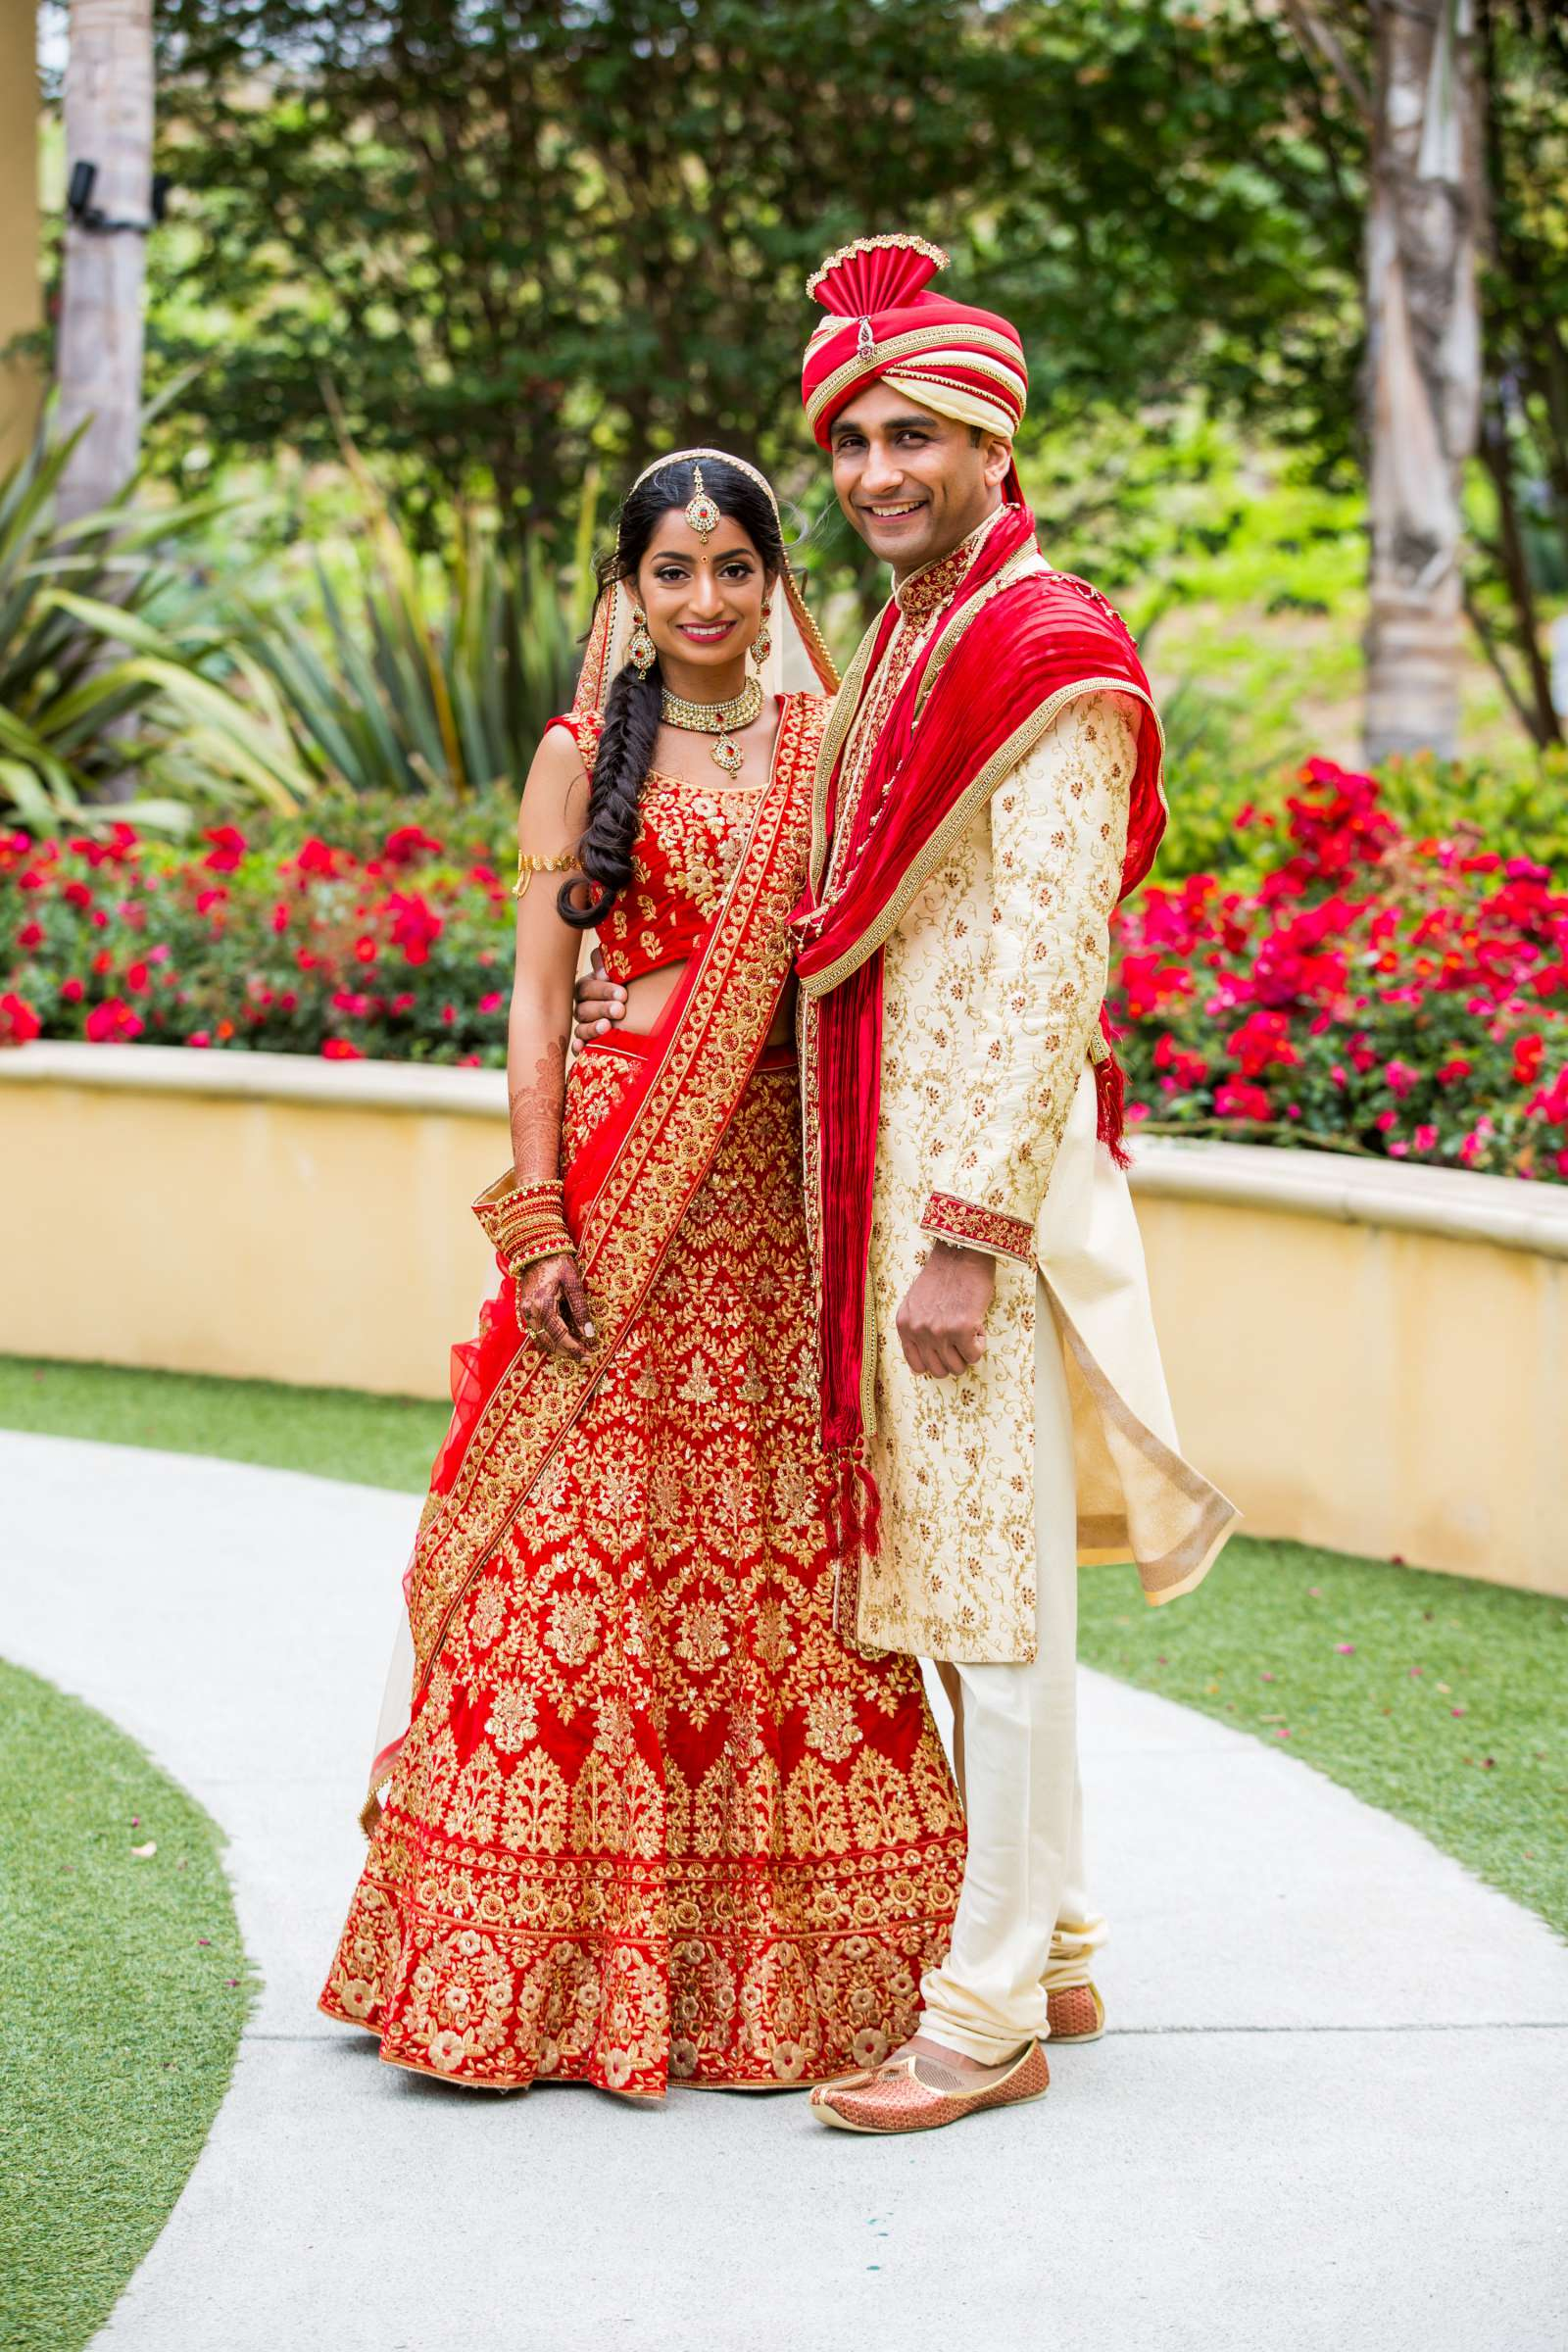 The Westin Carlsbad Resort and Spa Wedding coordinated by Shilpa Patel Events, Ami and Amit Wedding Photo #159 by True Photography